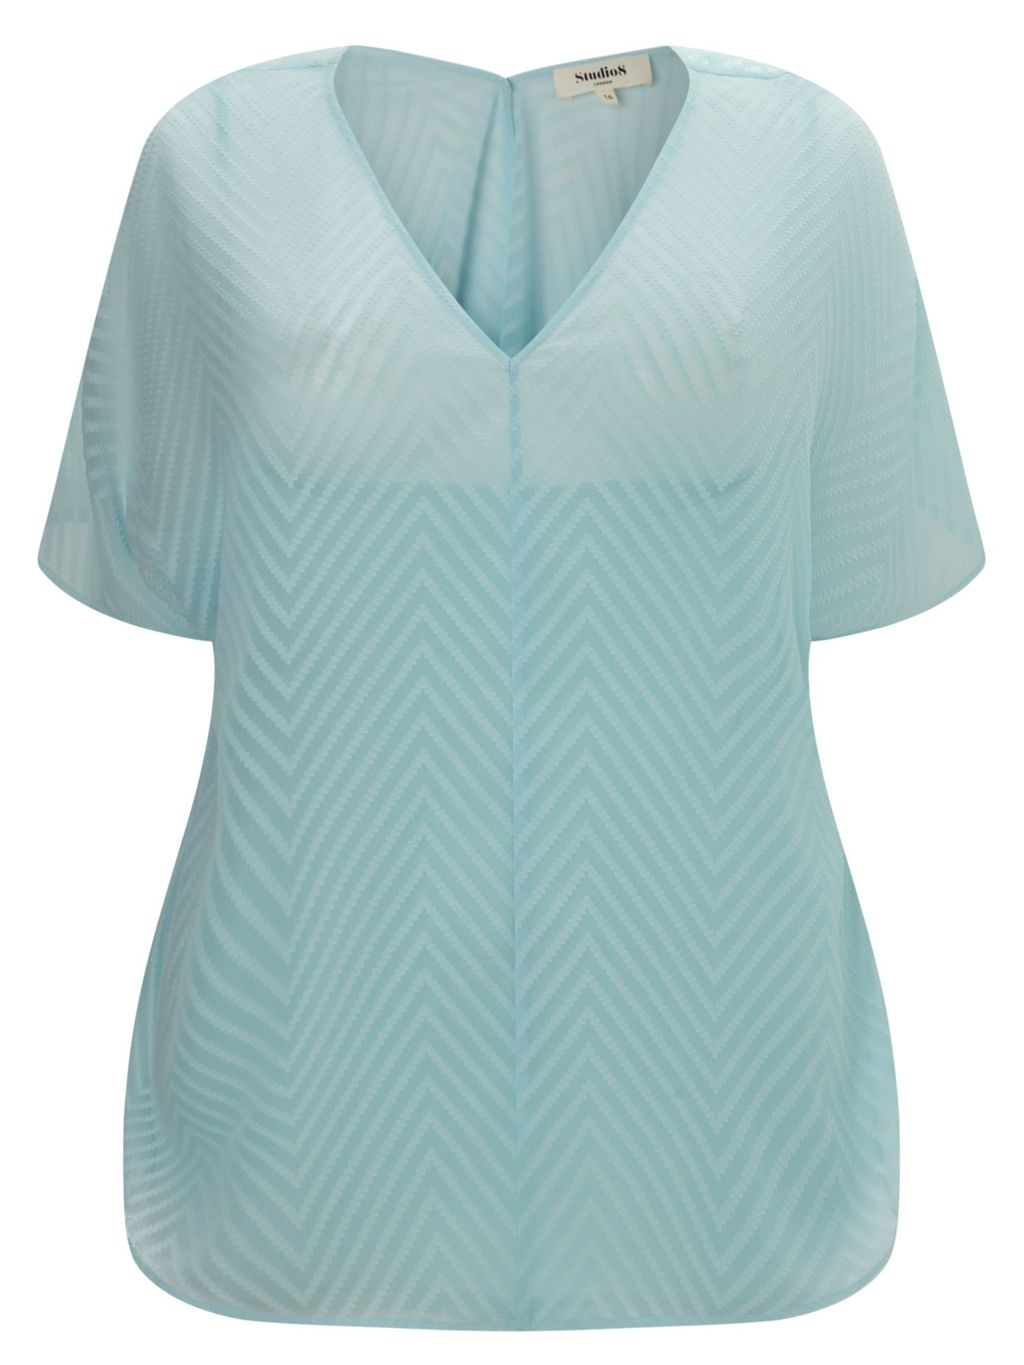 Harlow Top, Blue - neckline: v-neck; pattern: plain; predominant colour: pale blue; occasions: casual; length: standard; style: top; fibres: polyester/polyamide - 100%; fit: body skimming; sleeve length: short sleeve; sleeve style: standard; texture group: sheer fabrics/chiffon/organza etc.; pattern type: fabric; season: s/s 2016; wardrobe: highlight